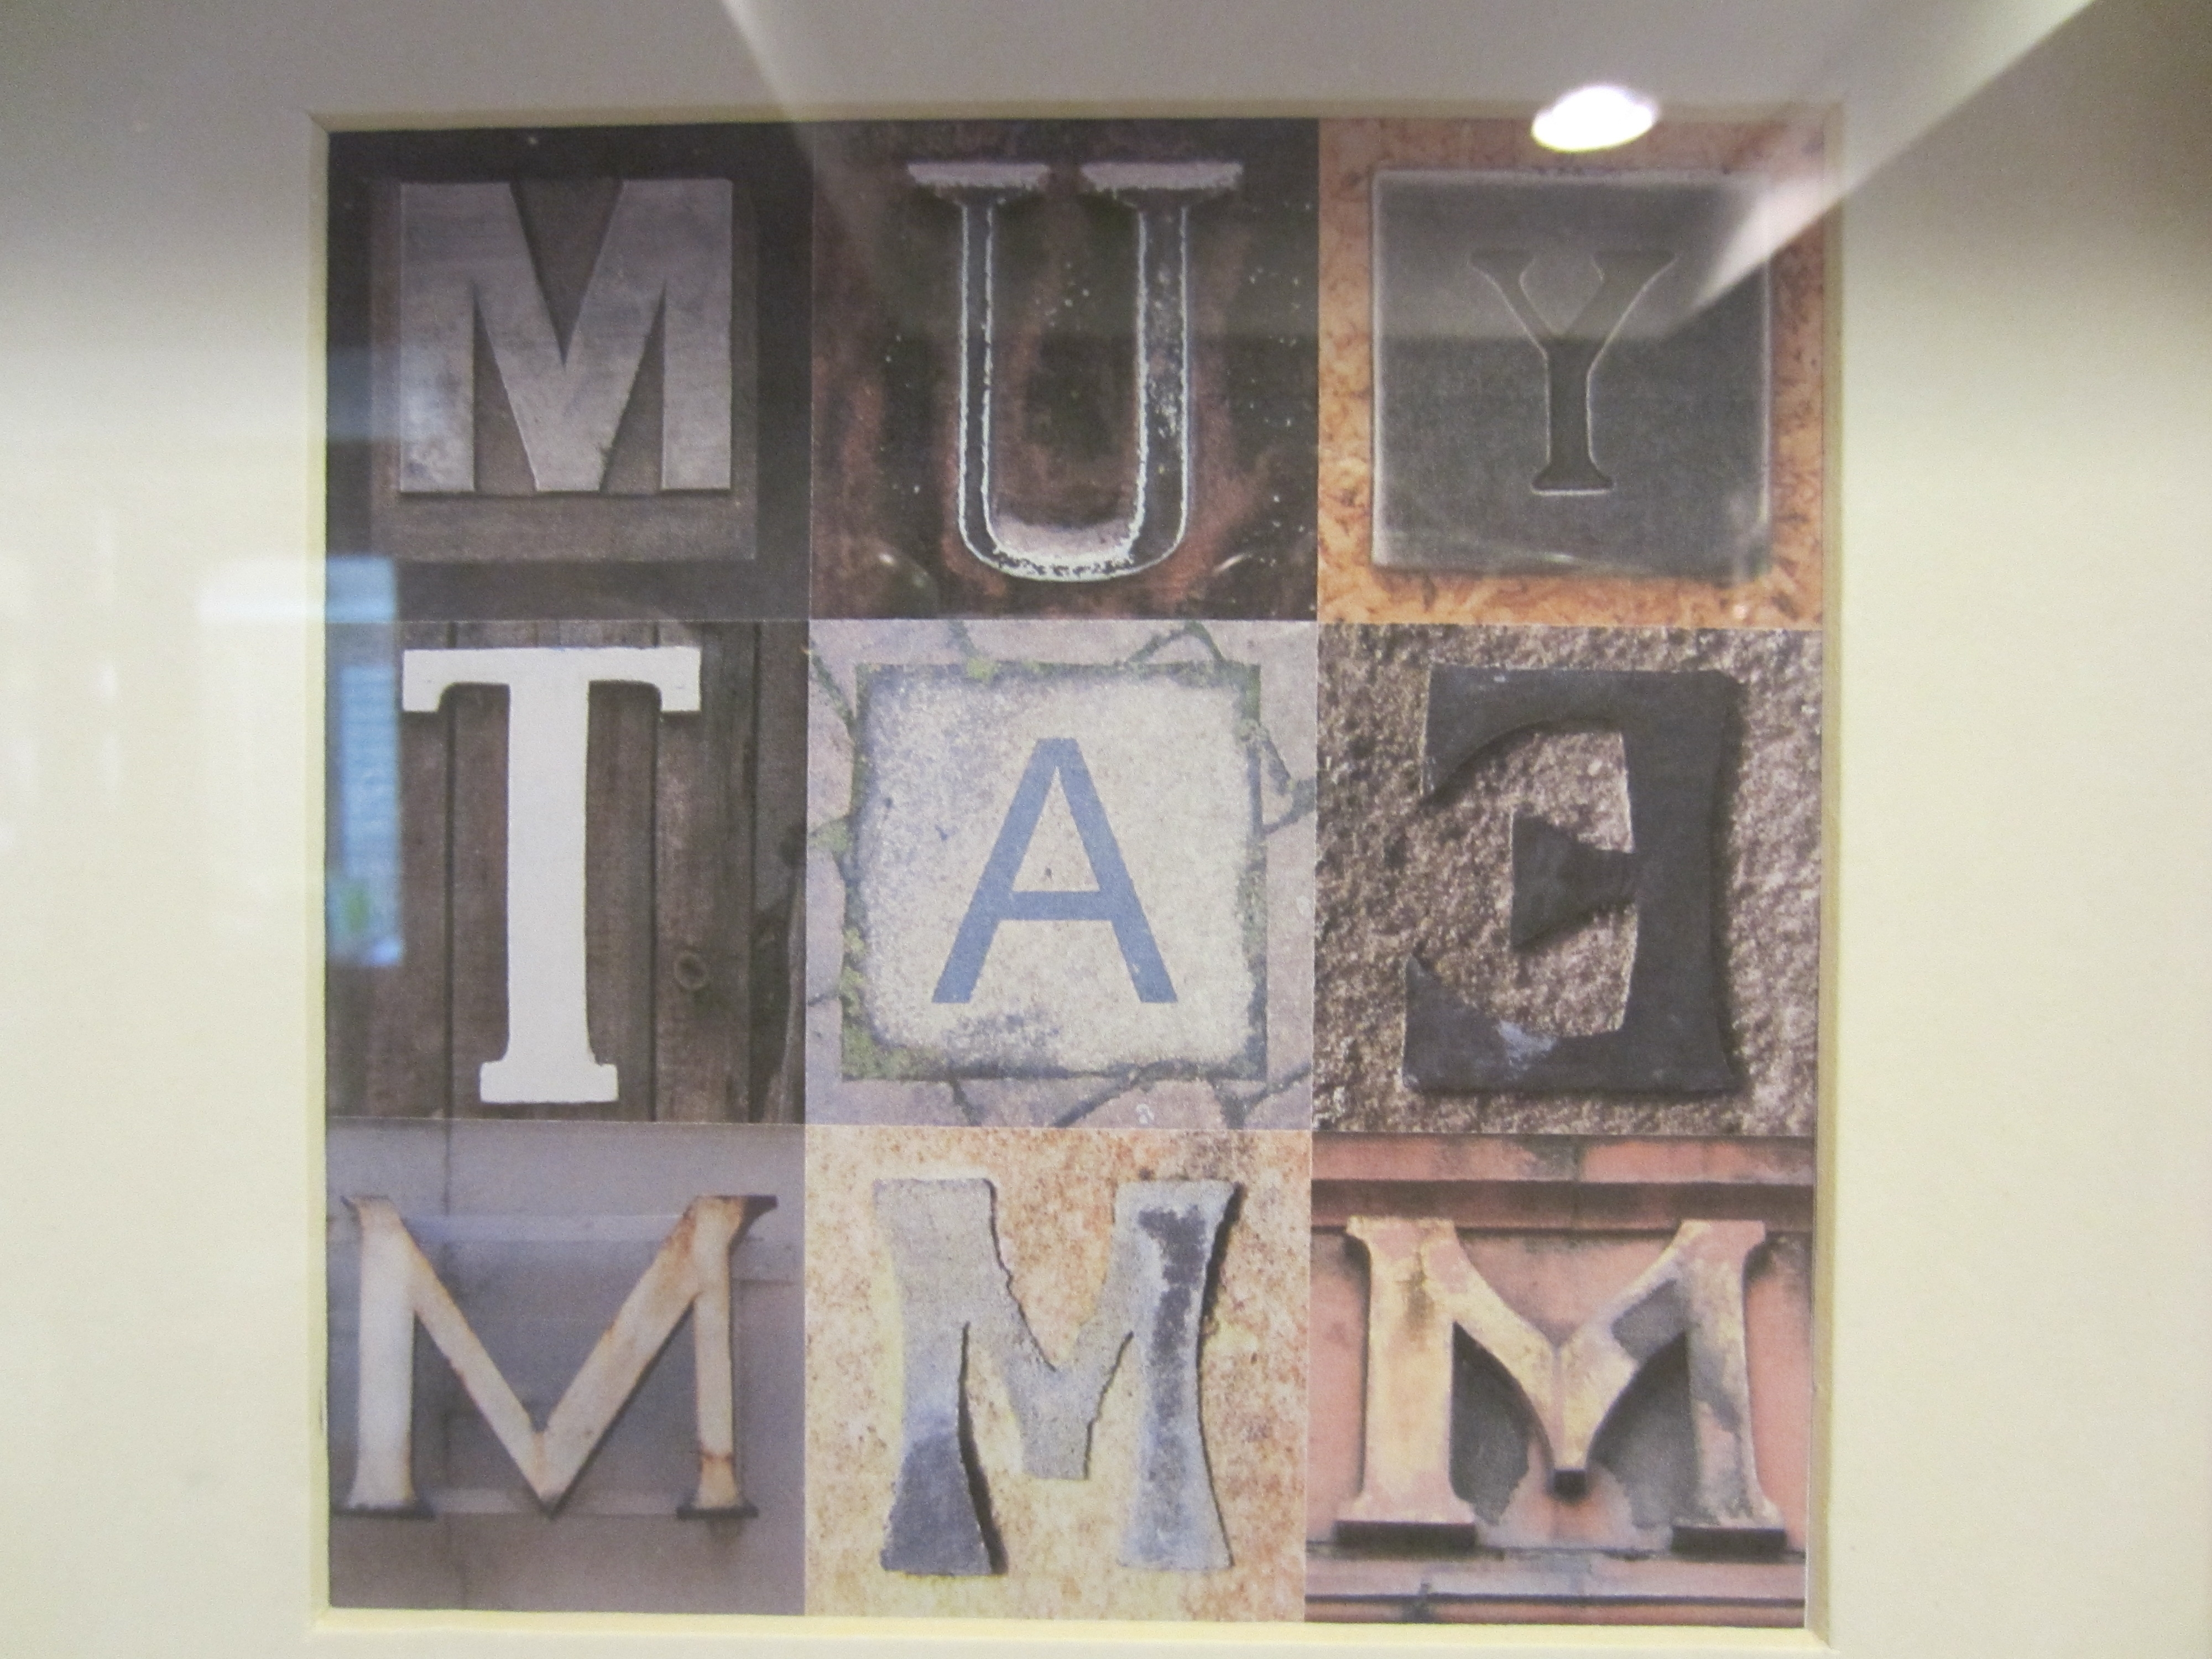 Letter Wall Art Intended For Most Current Letter And Number Diy Wall Art – Diy Inspired (View 4 of 15)